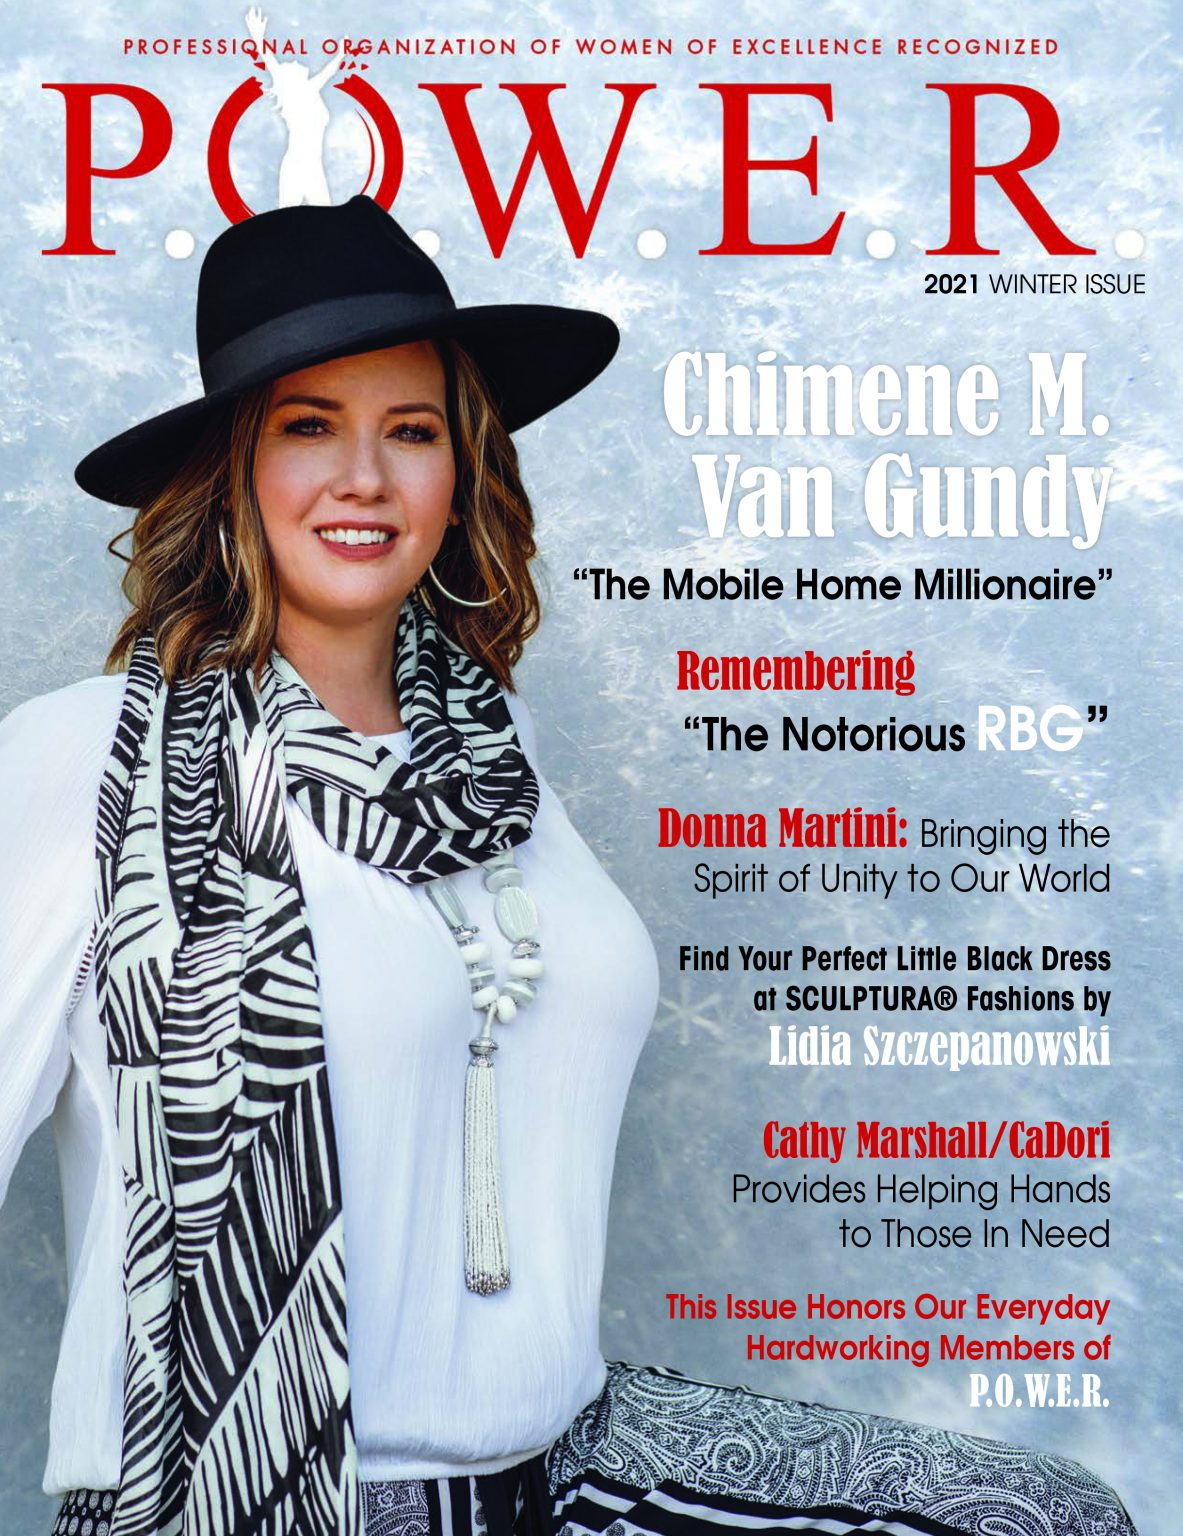 Chimene M. Van Gundy Showcased on the Cover of the Winter 2021 Issue of P.O.W.E.R. Magazine